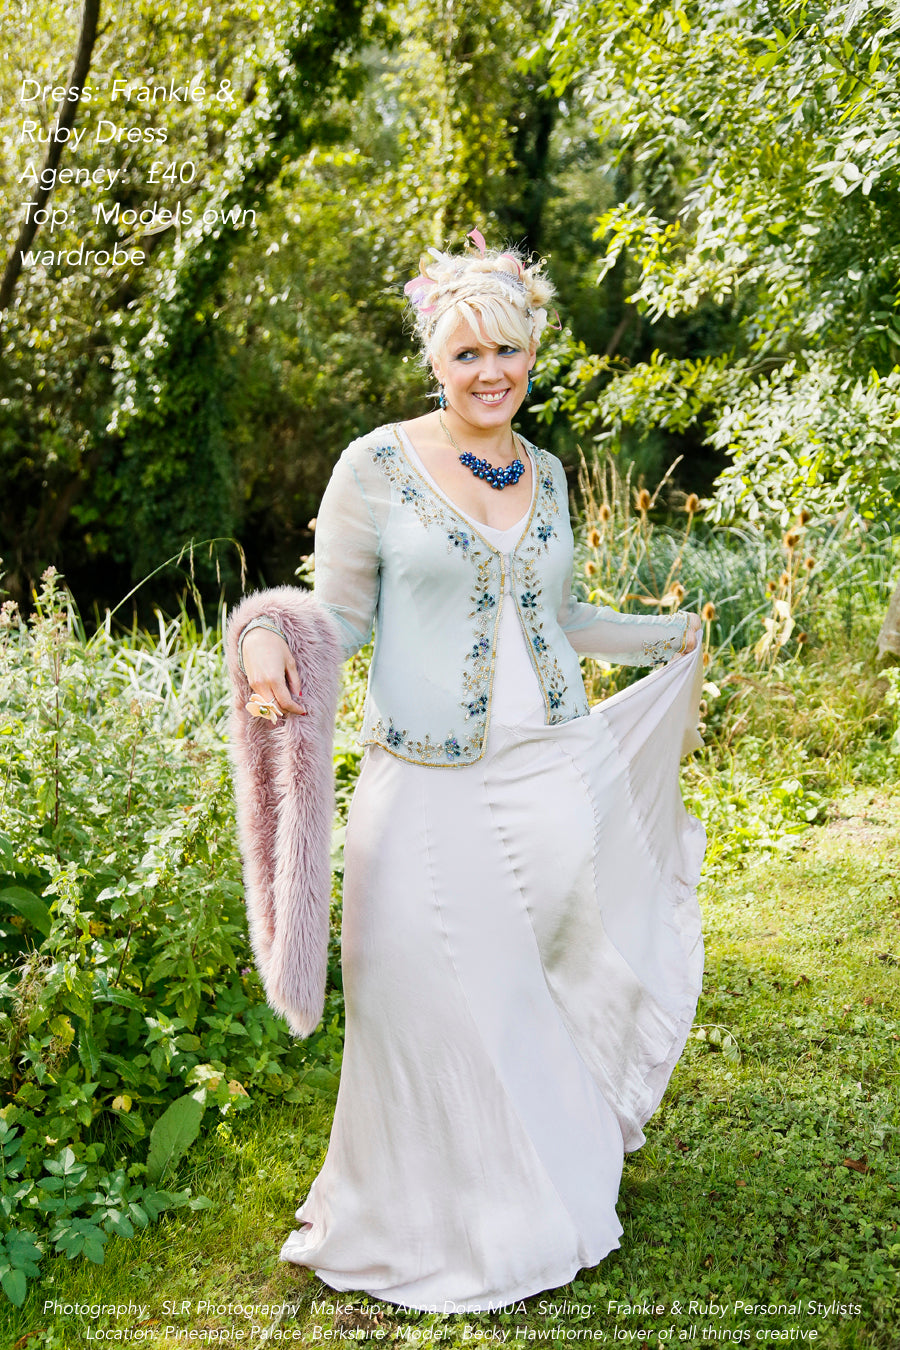 A model in a floaty dress wearing secondhand clothes